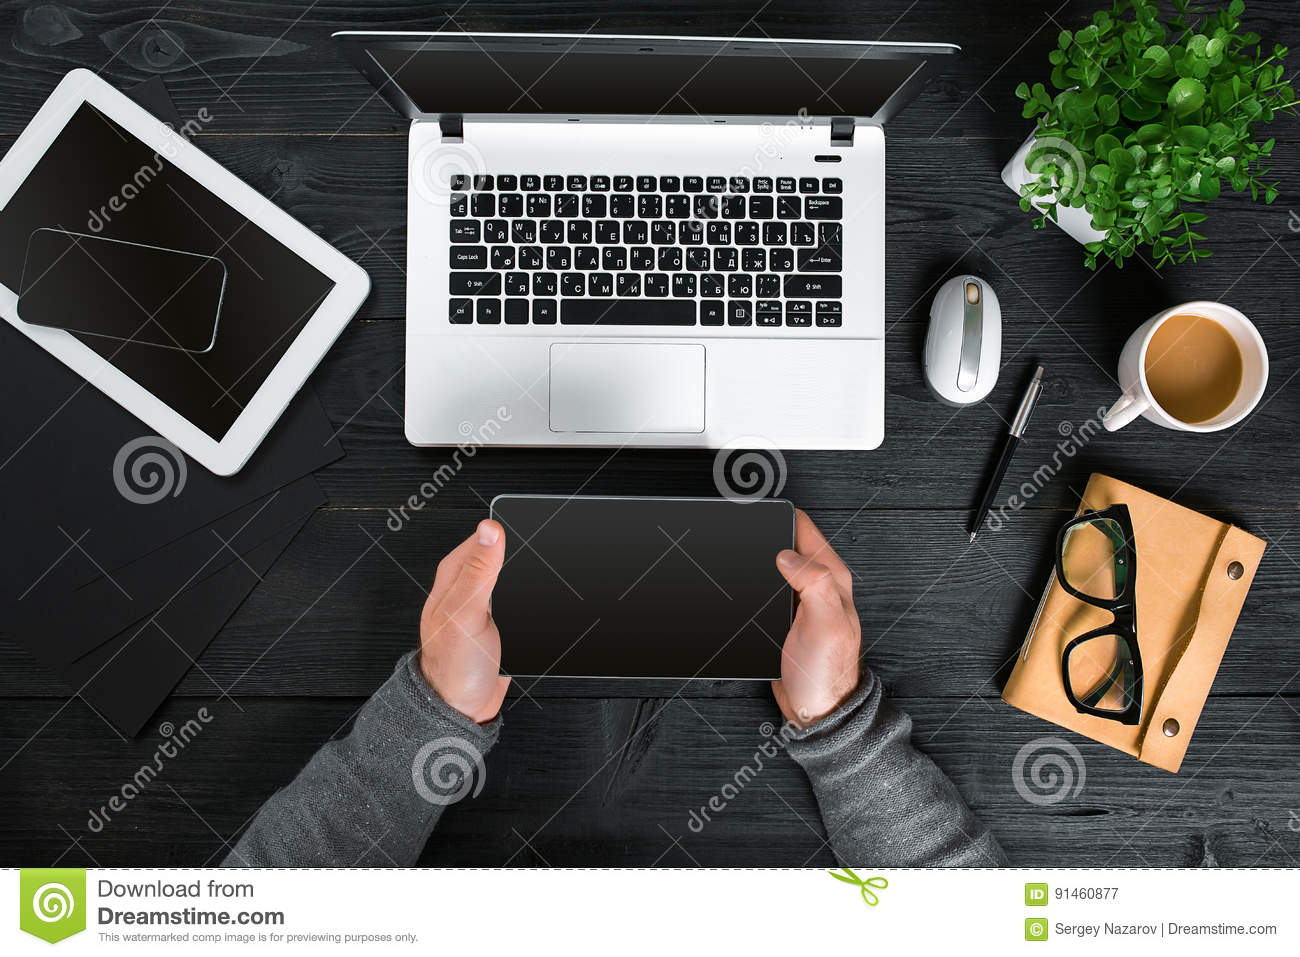 Hipster black wooden desktop top view, male hands typing on a laptop